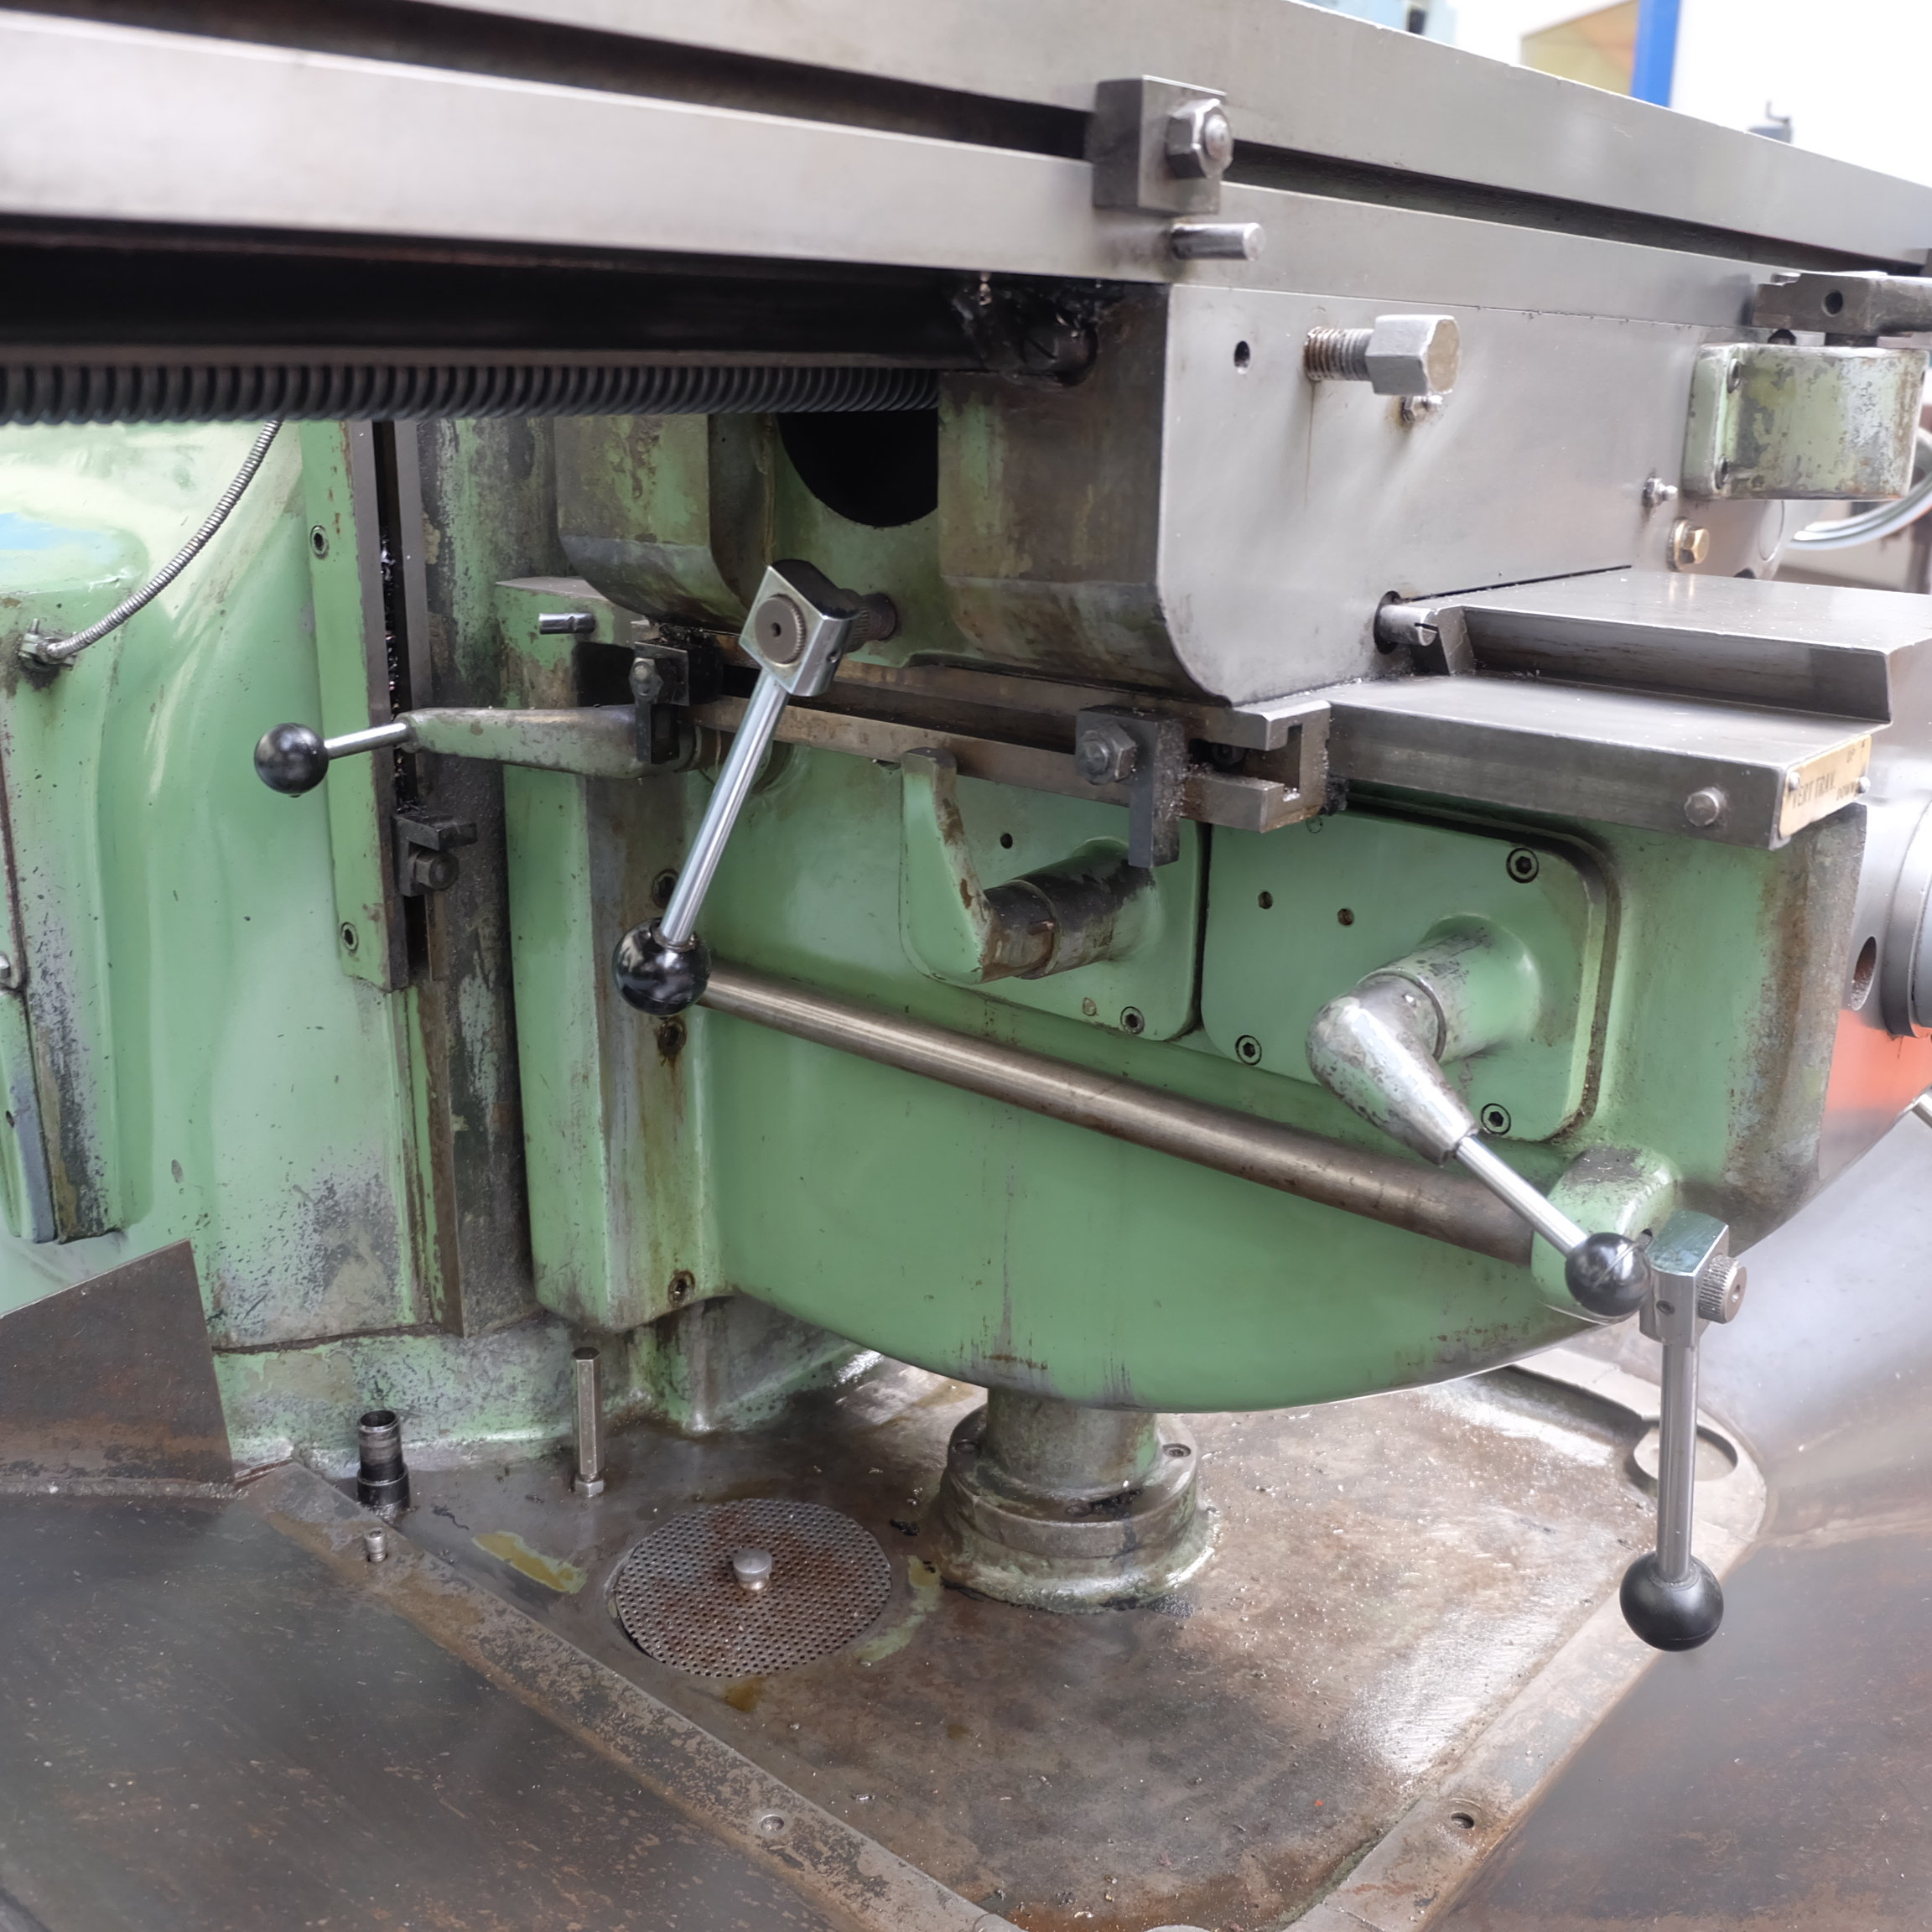 Richmond No 3V Vertical Milling Machine. - Image 12 of 12